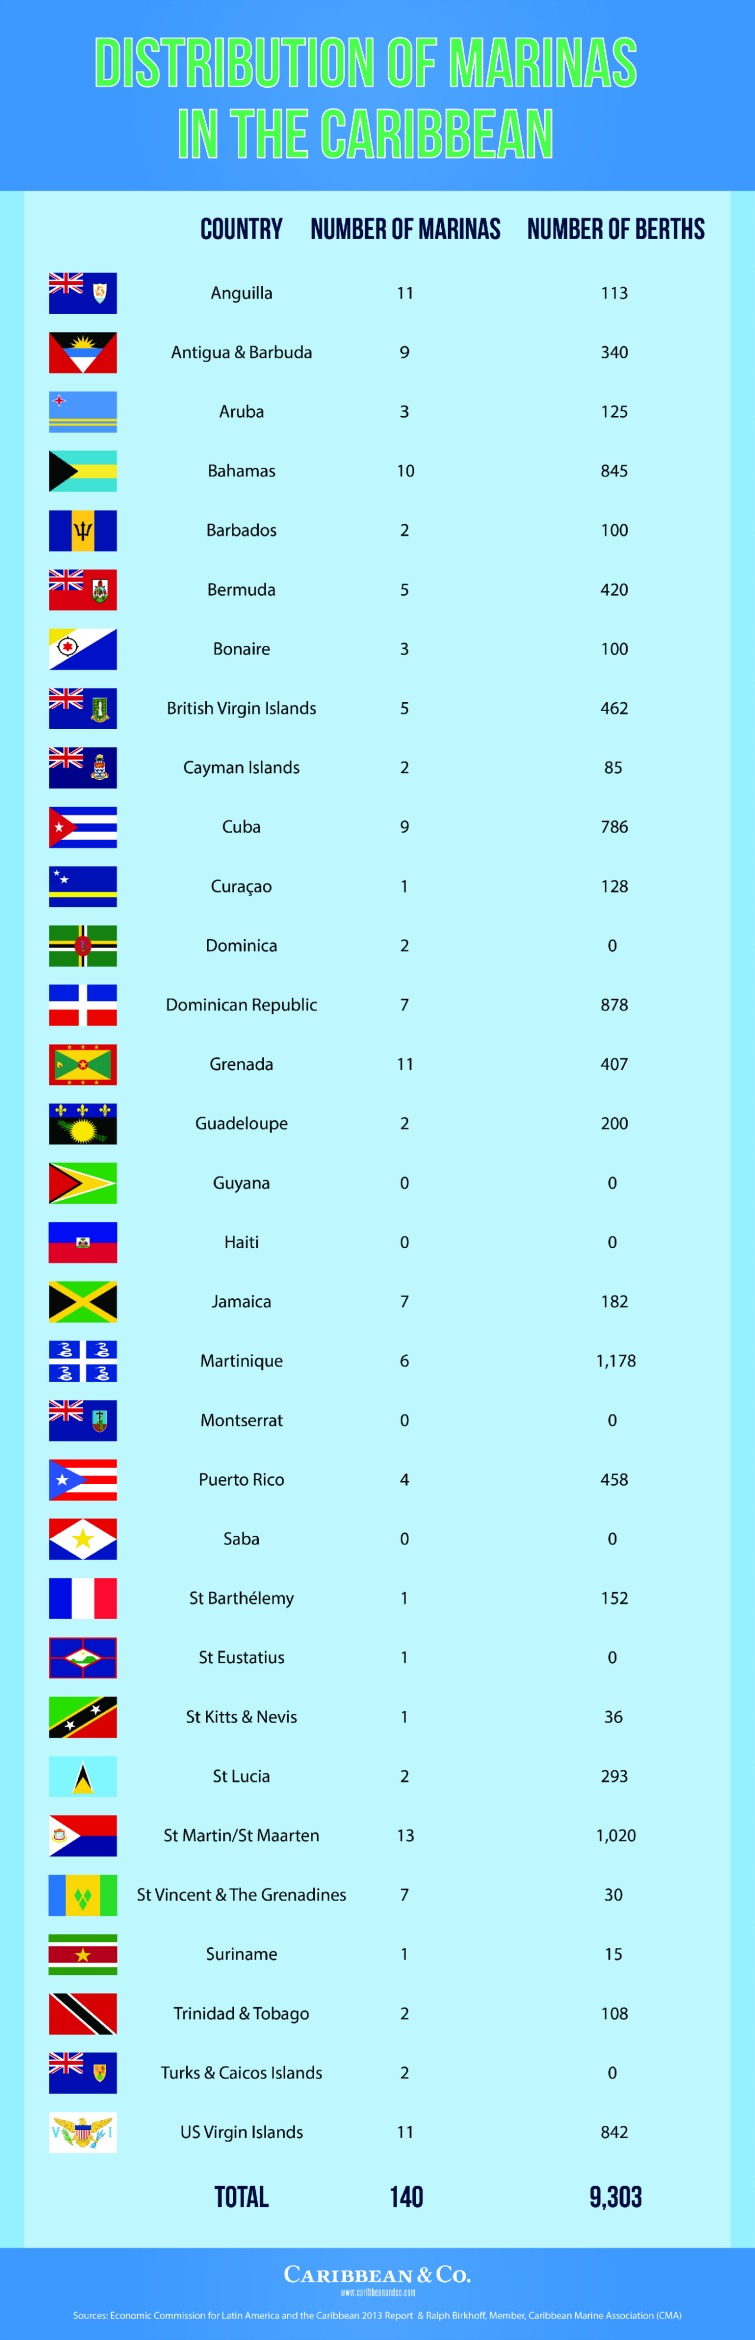 Distribution of Marinas in the Caribbean